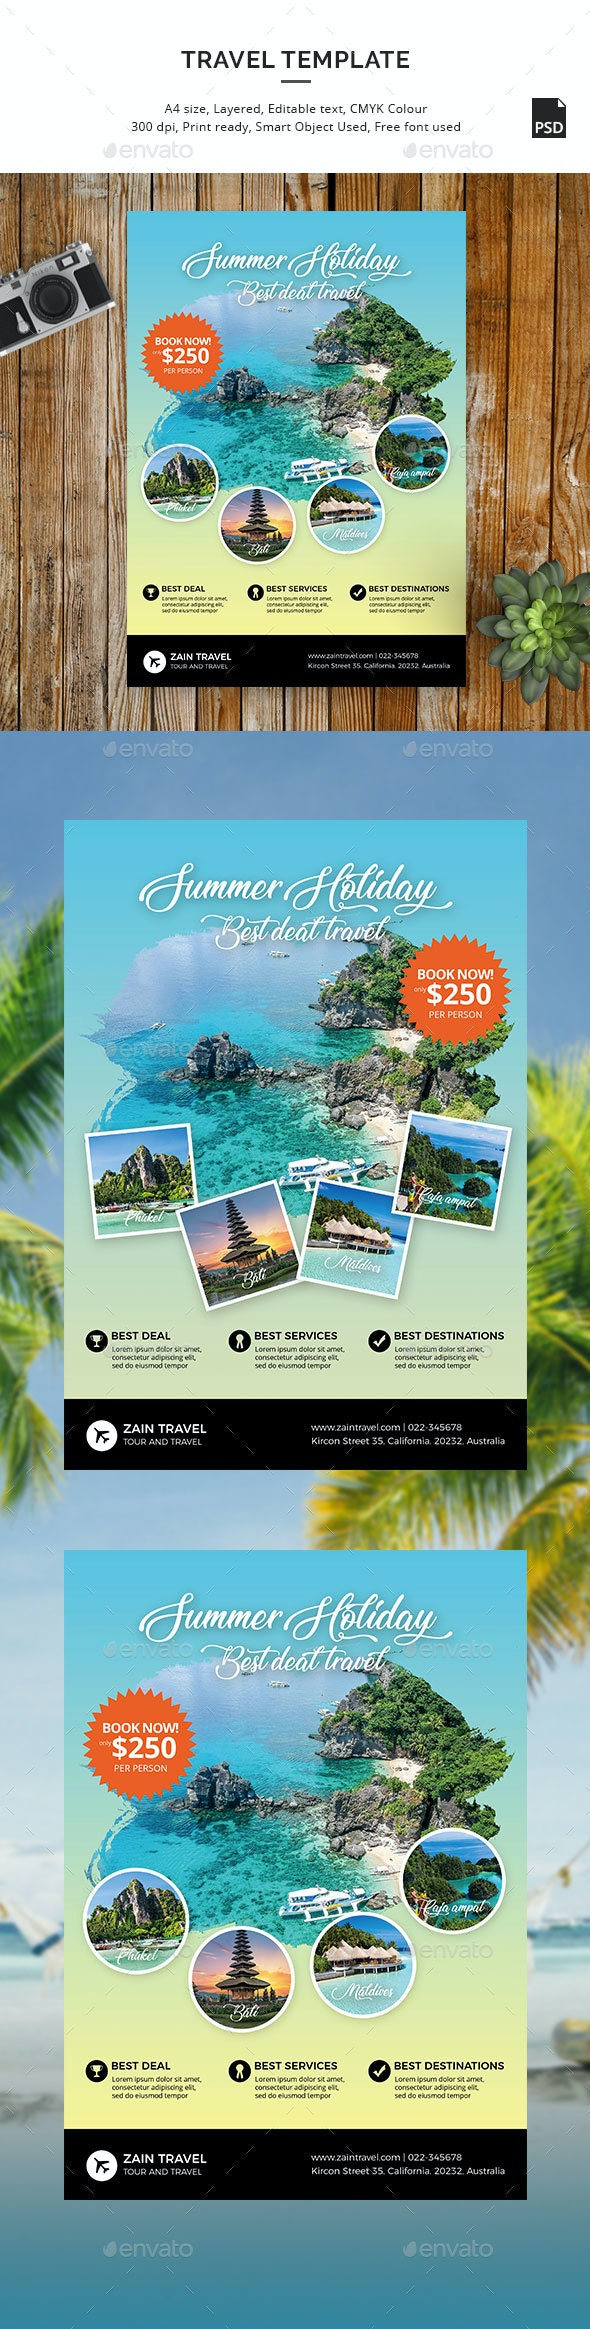 Travel Flyer Promo Template - Holidays Events